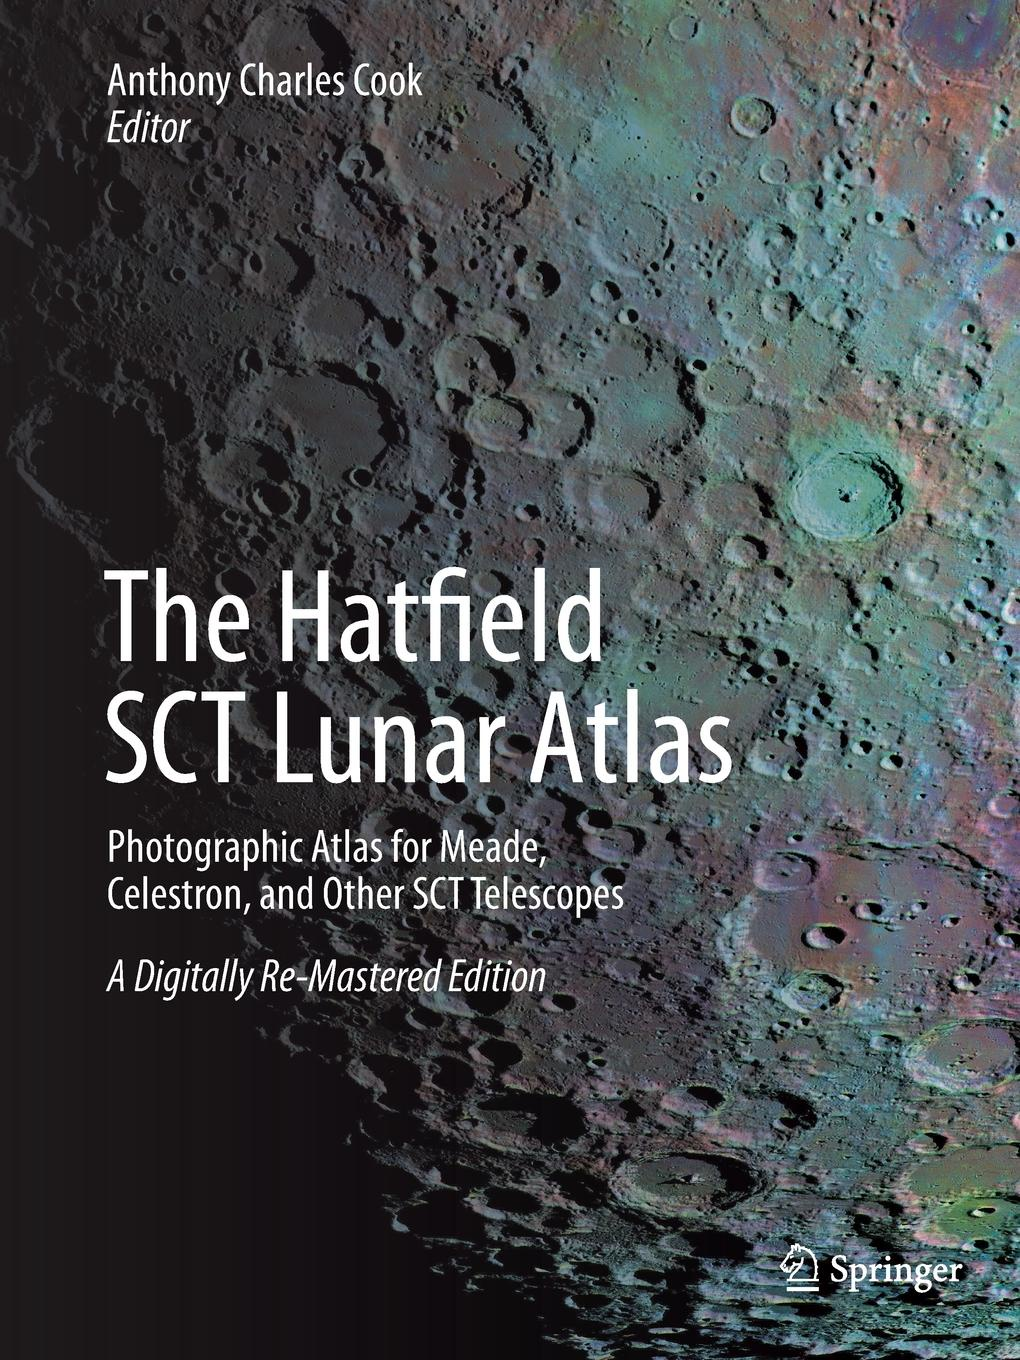 The Hatfield SCT Lunar Atlas. Photographic Atlas for Meade, Celestron, and Other Telescopes: A Digitally Re-Mastered Edition